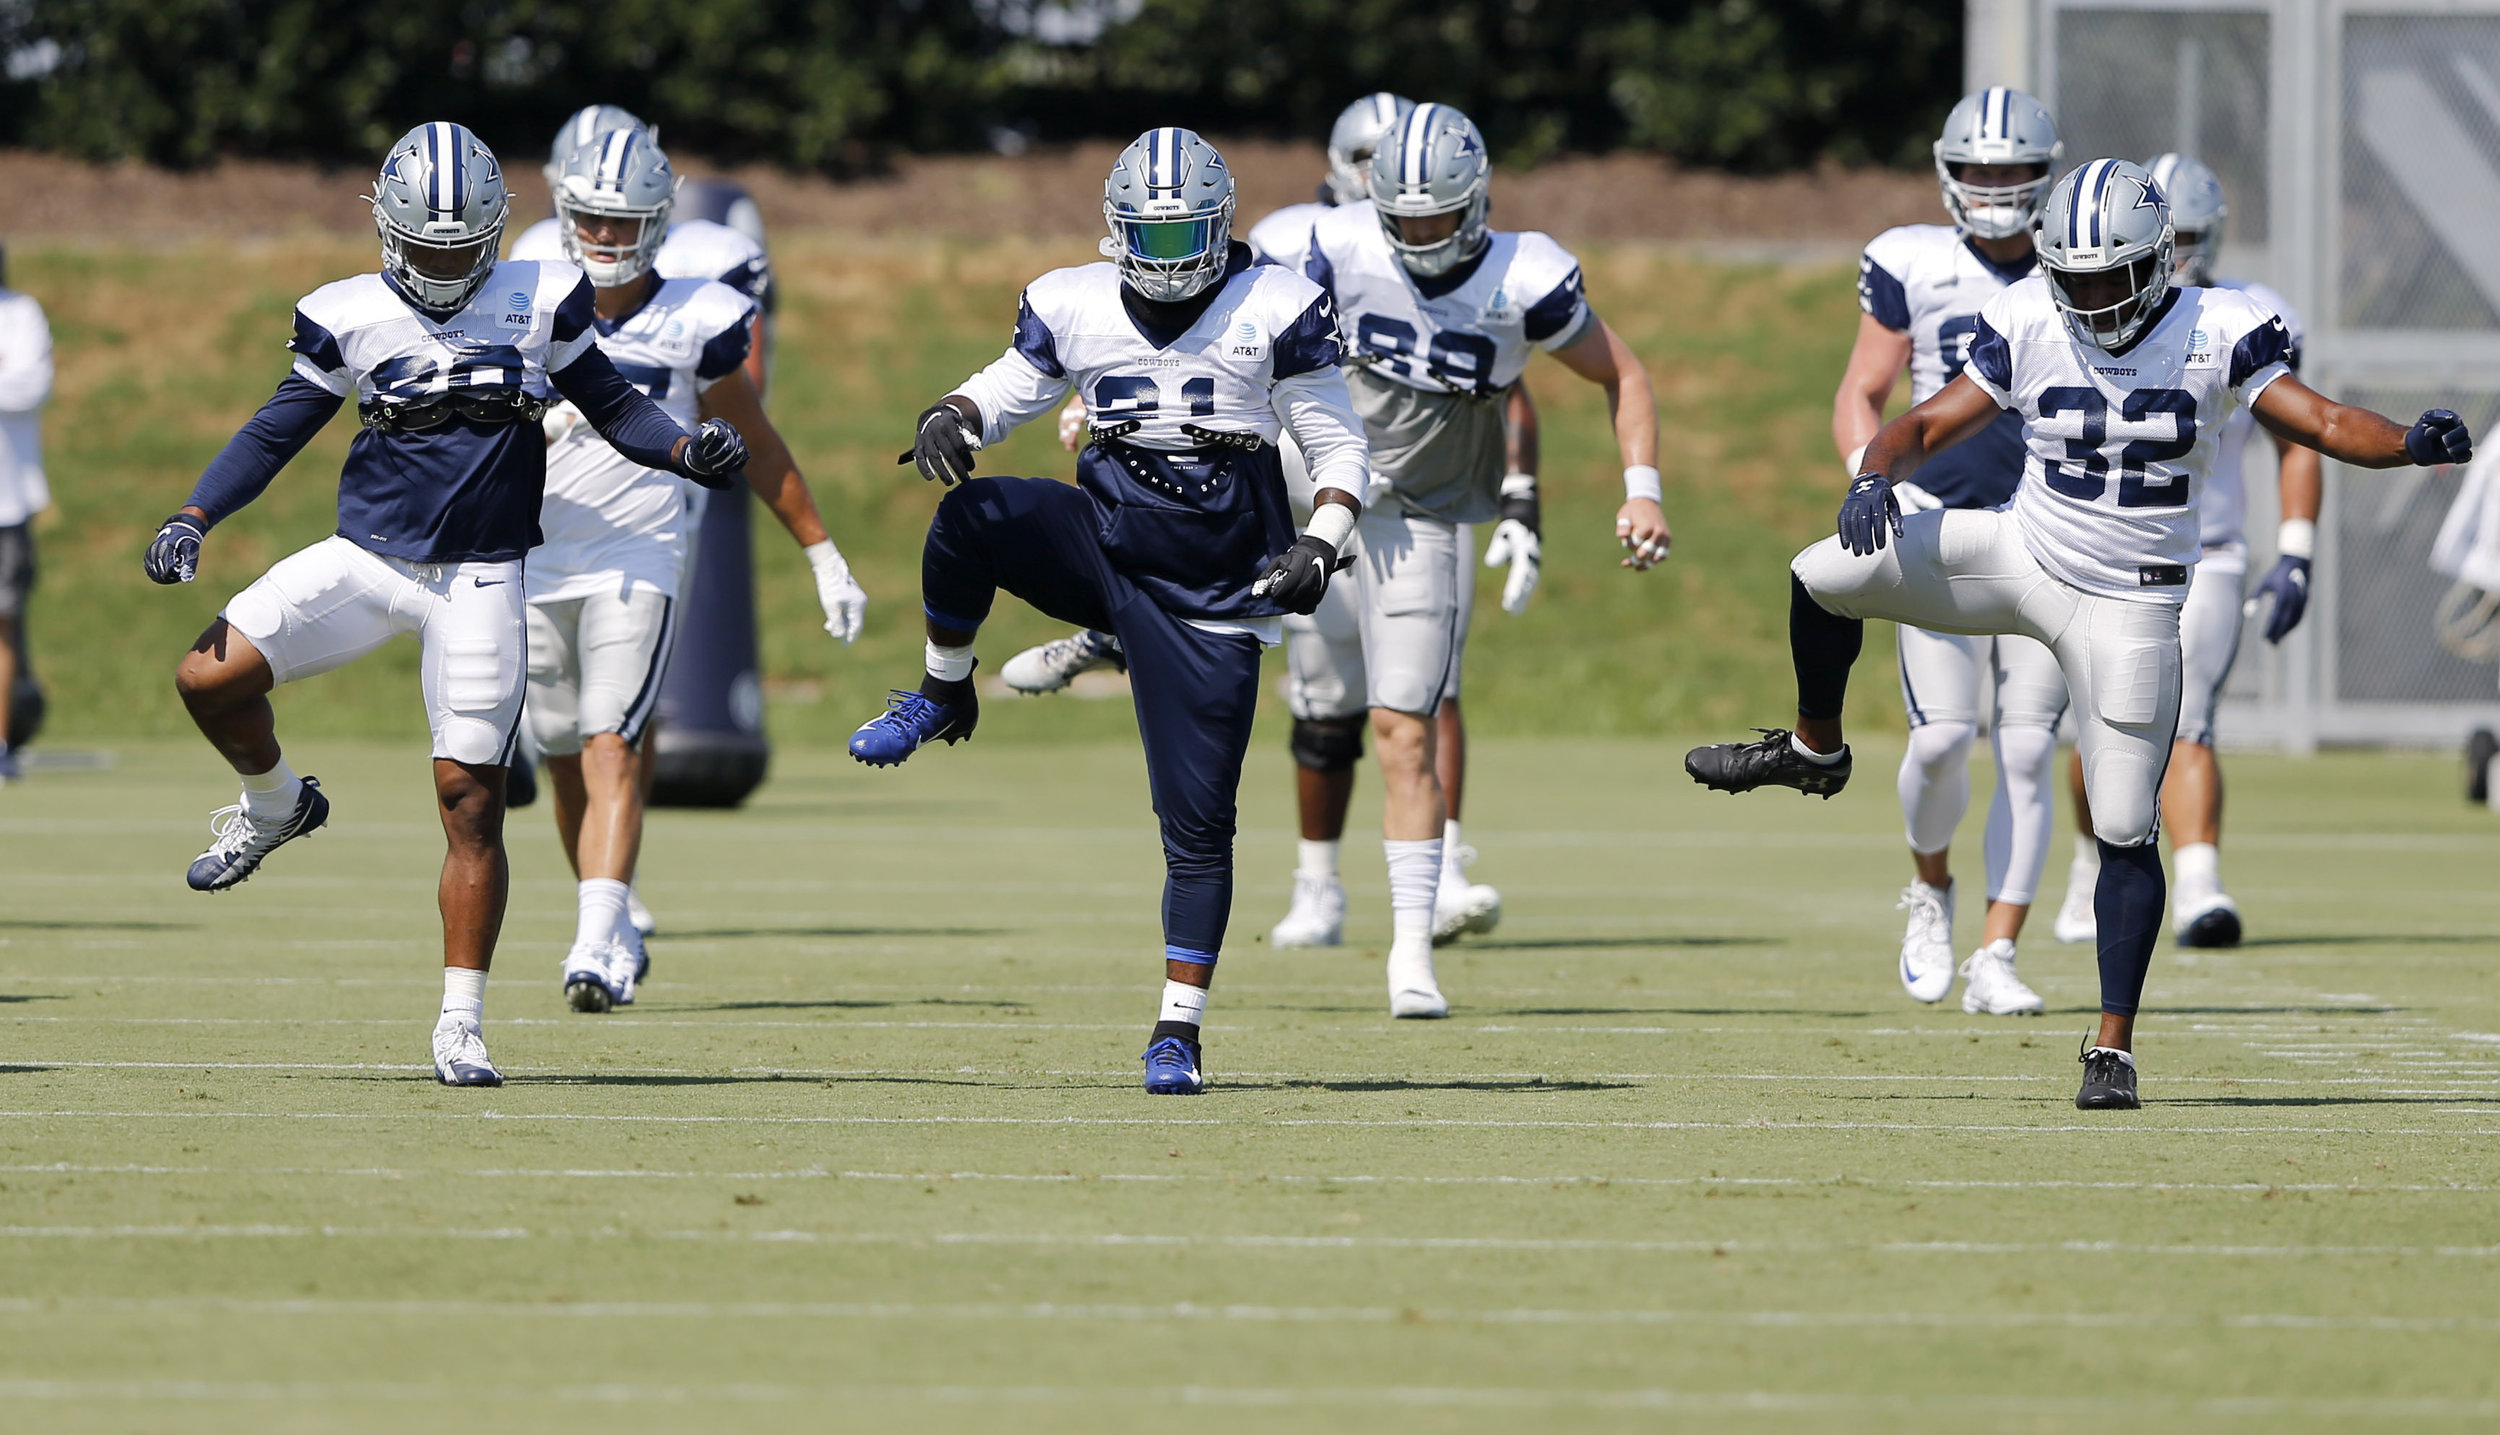 The Cowboys defense, headlined by Jaylon Smith's 5-year extension, looks poised for a strong season.  Photo from The Associated Press